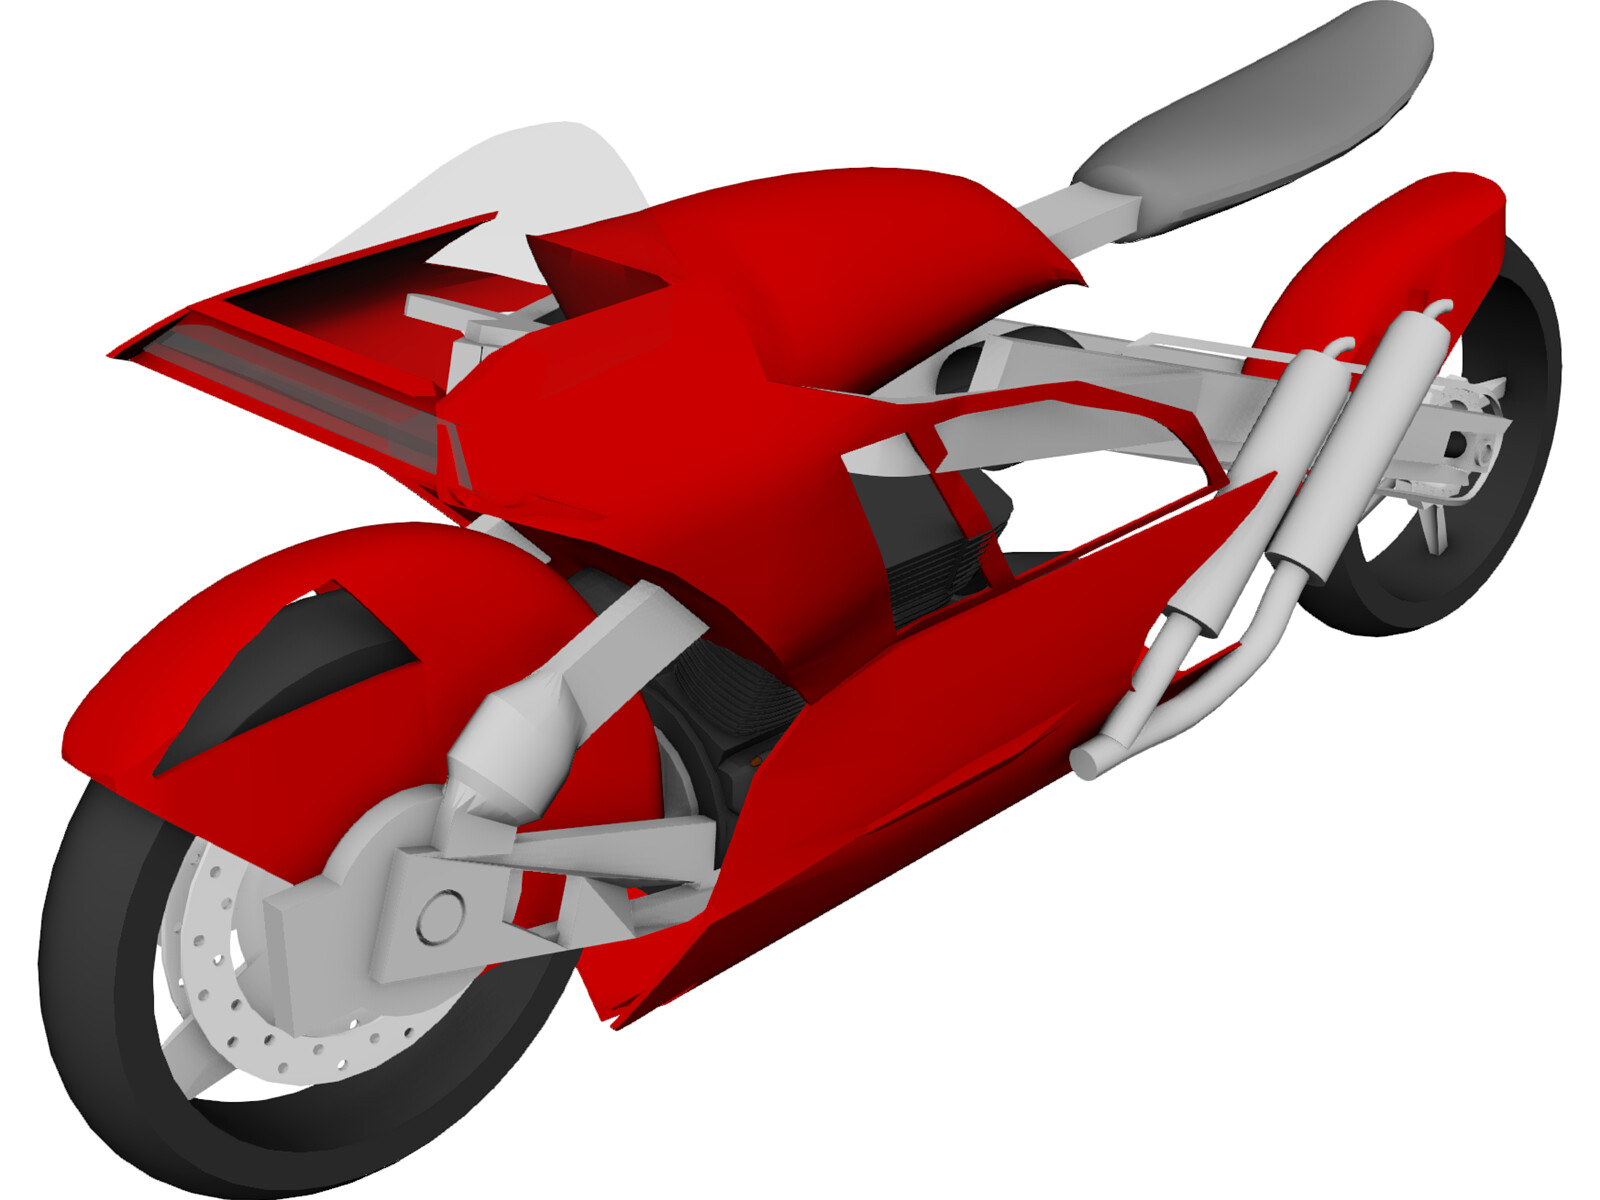 Electric Motorcycle Concept 3D Model